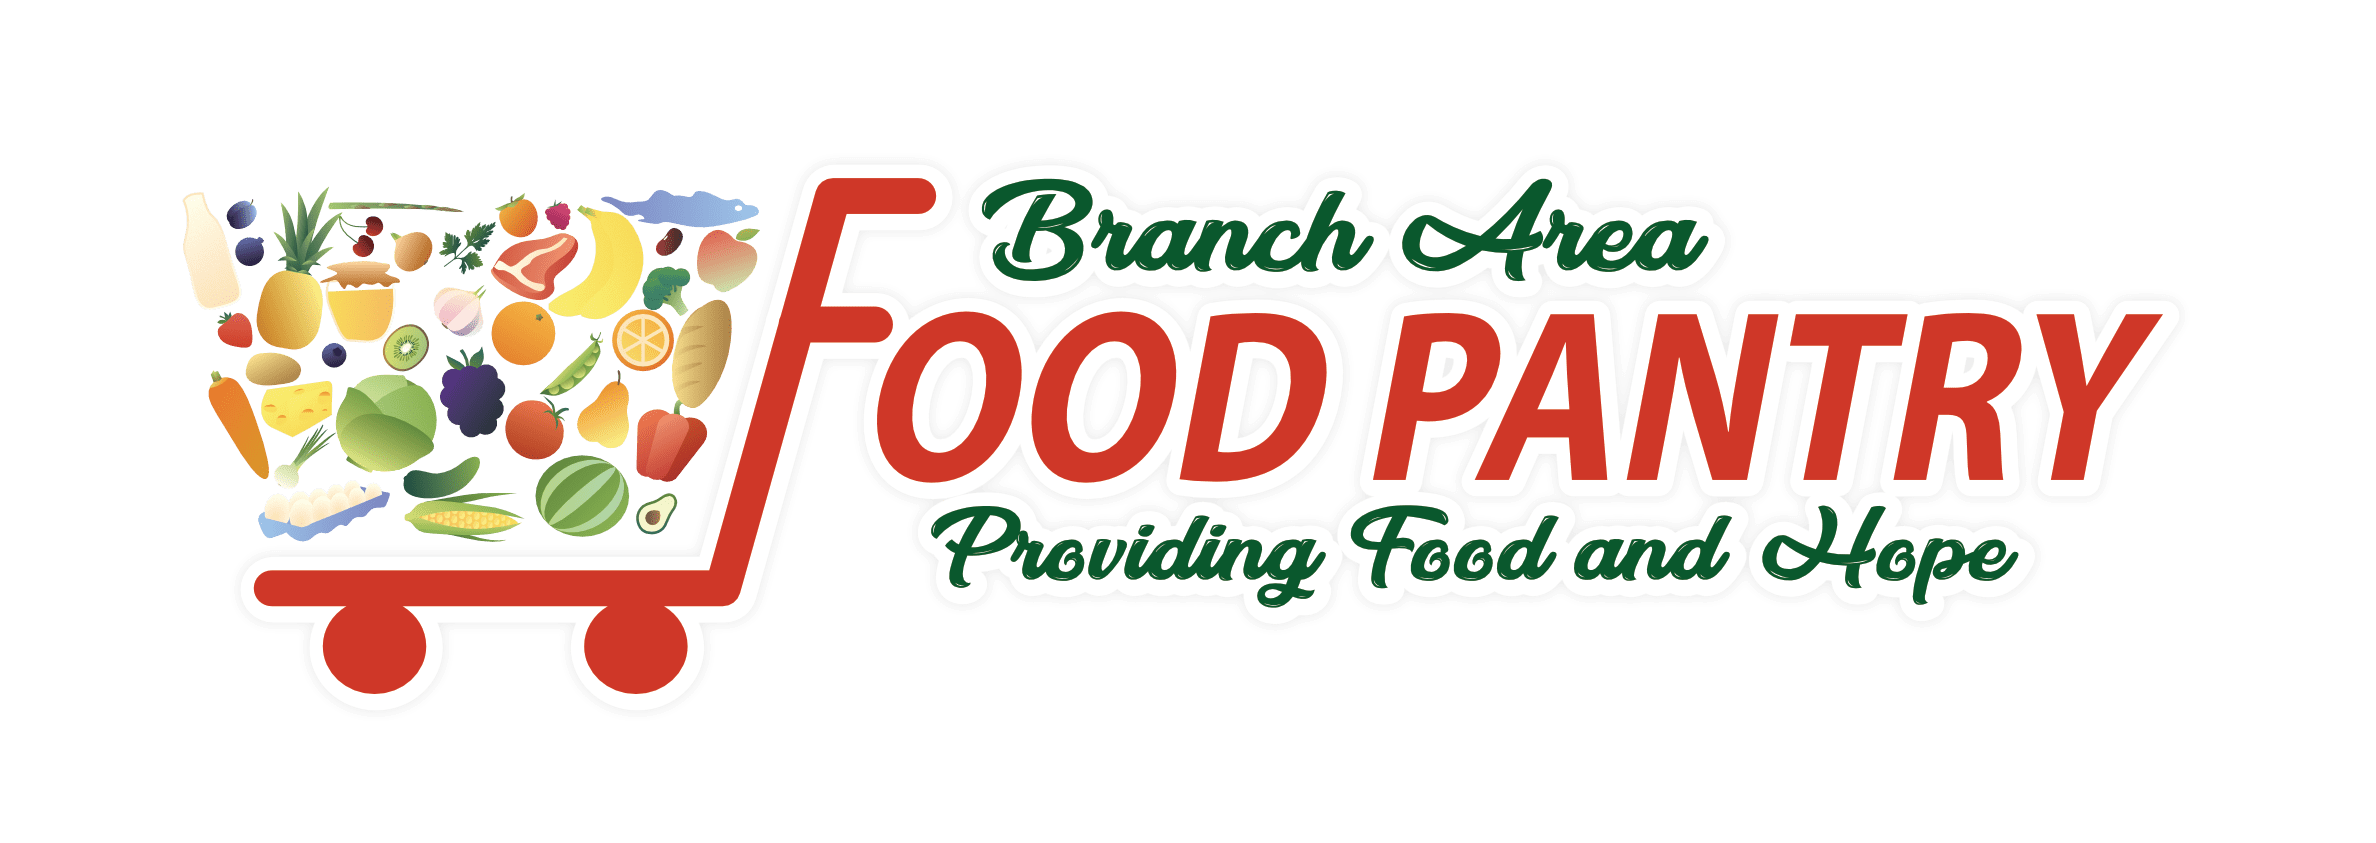 Branch Area Food Pantry